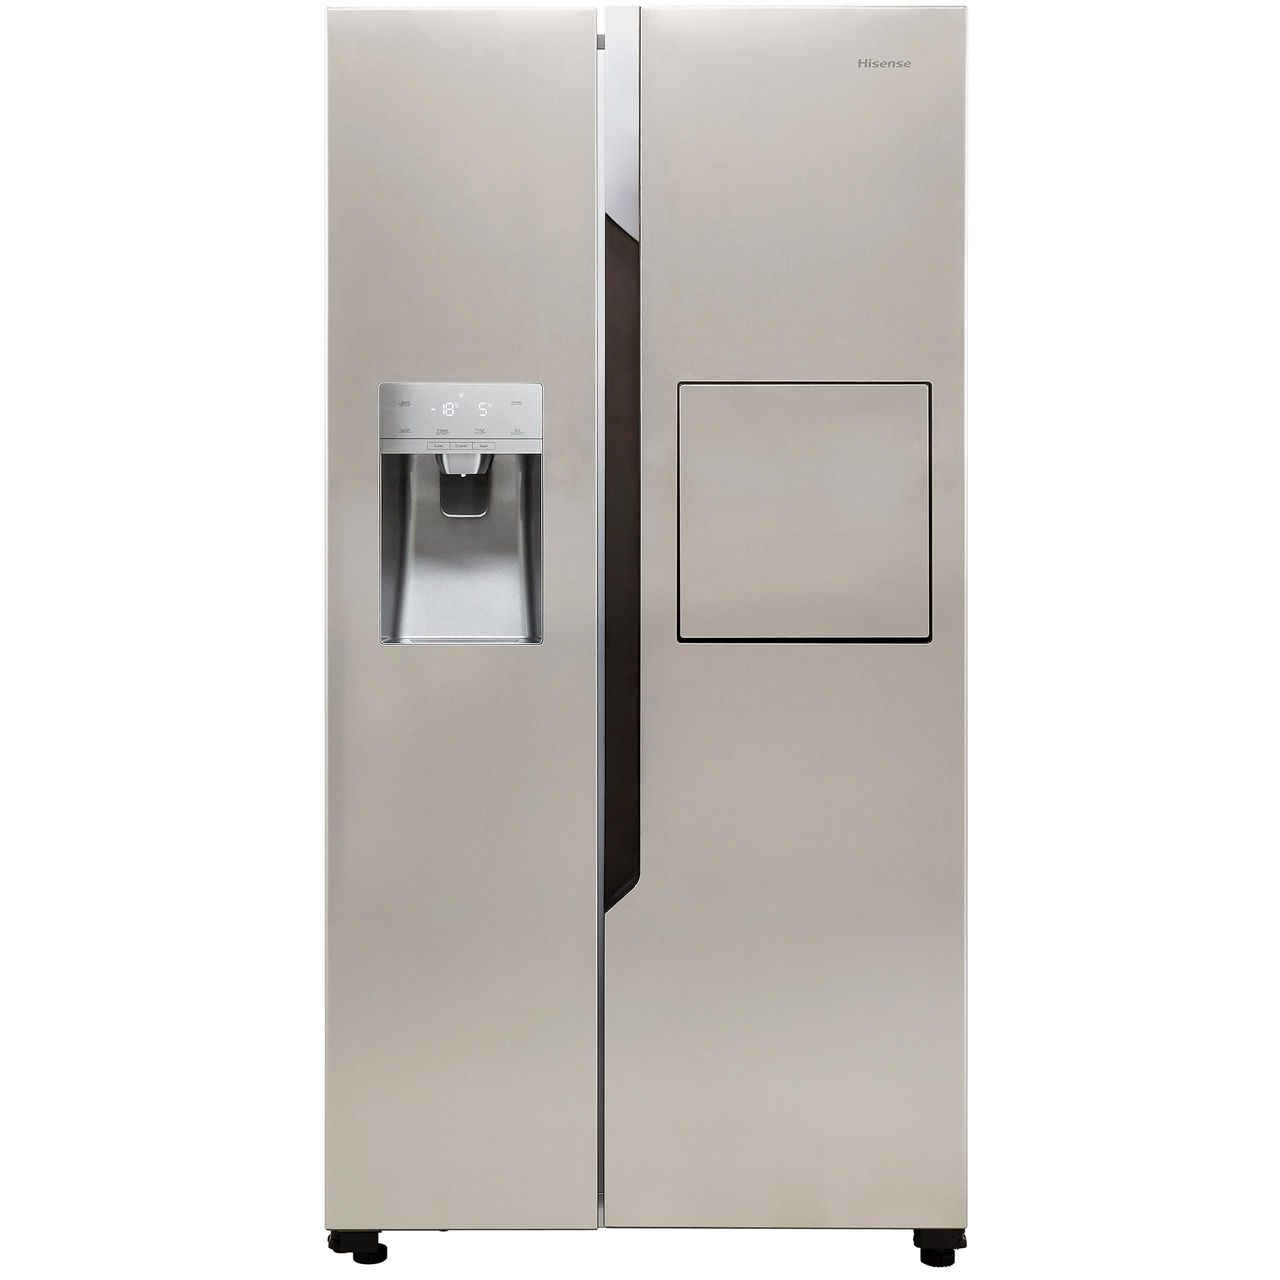 Fridge Freezer Hisense Rs694n4bc1 American Fridge Freezer Stainless Steel A Rated